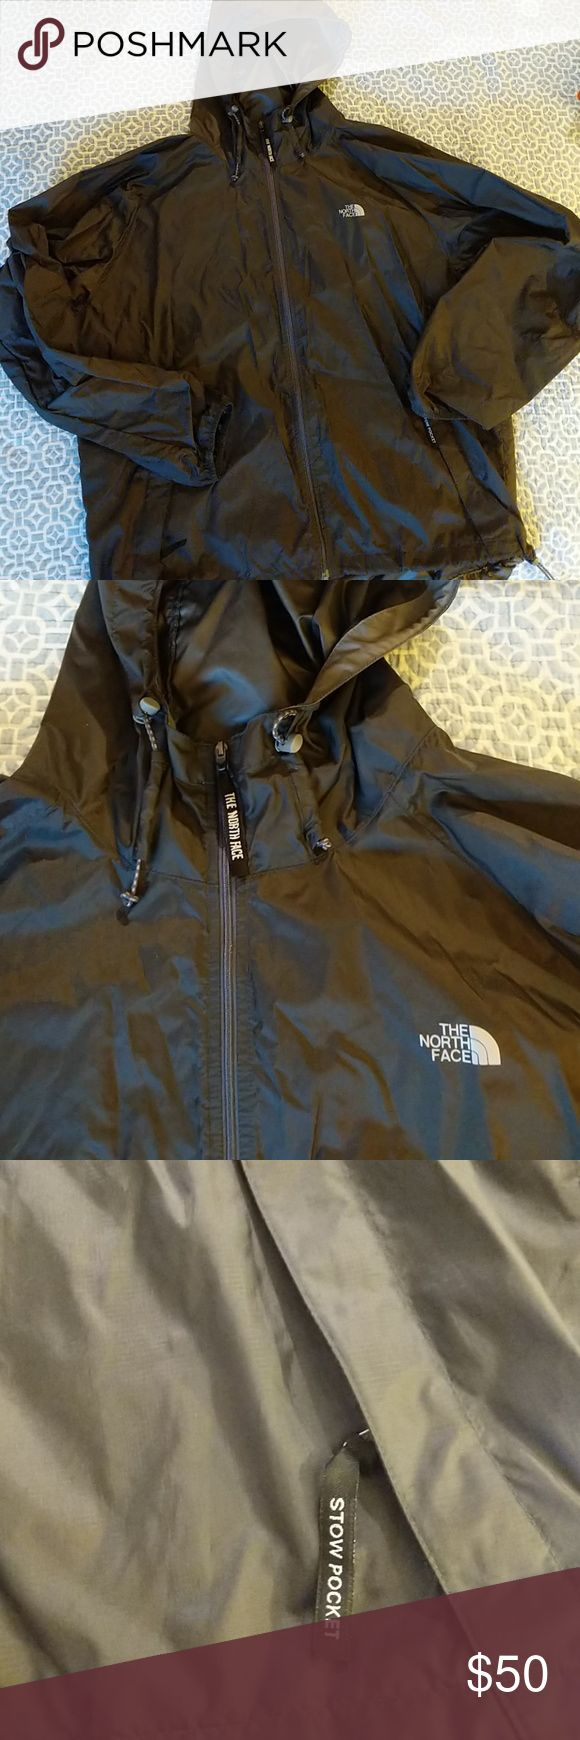 Mens lightweight packable rain jacket - North Face This extra lightweight rain jacket from North Face is in like new condition it can pack into its own Stow pocket includes Bungie at the hood and at the hem, elastic at the wrists, and a slight bill to the hood. Feel free to make a bundle or an offer! The North Face Jackets & Coats Raincoats